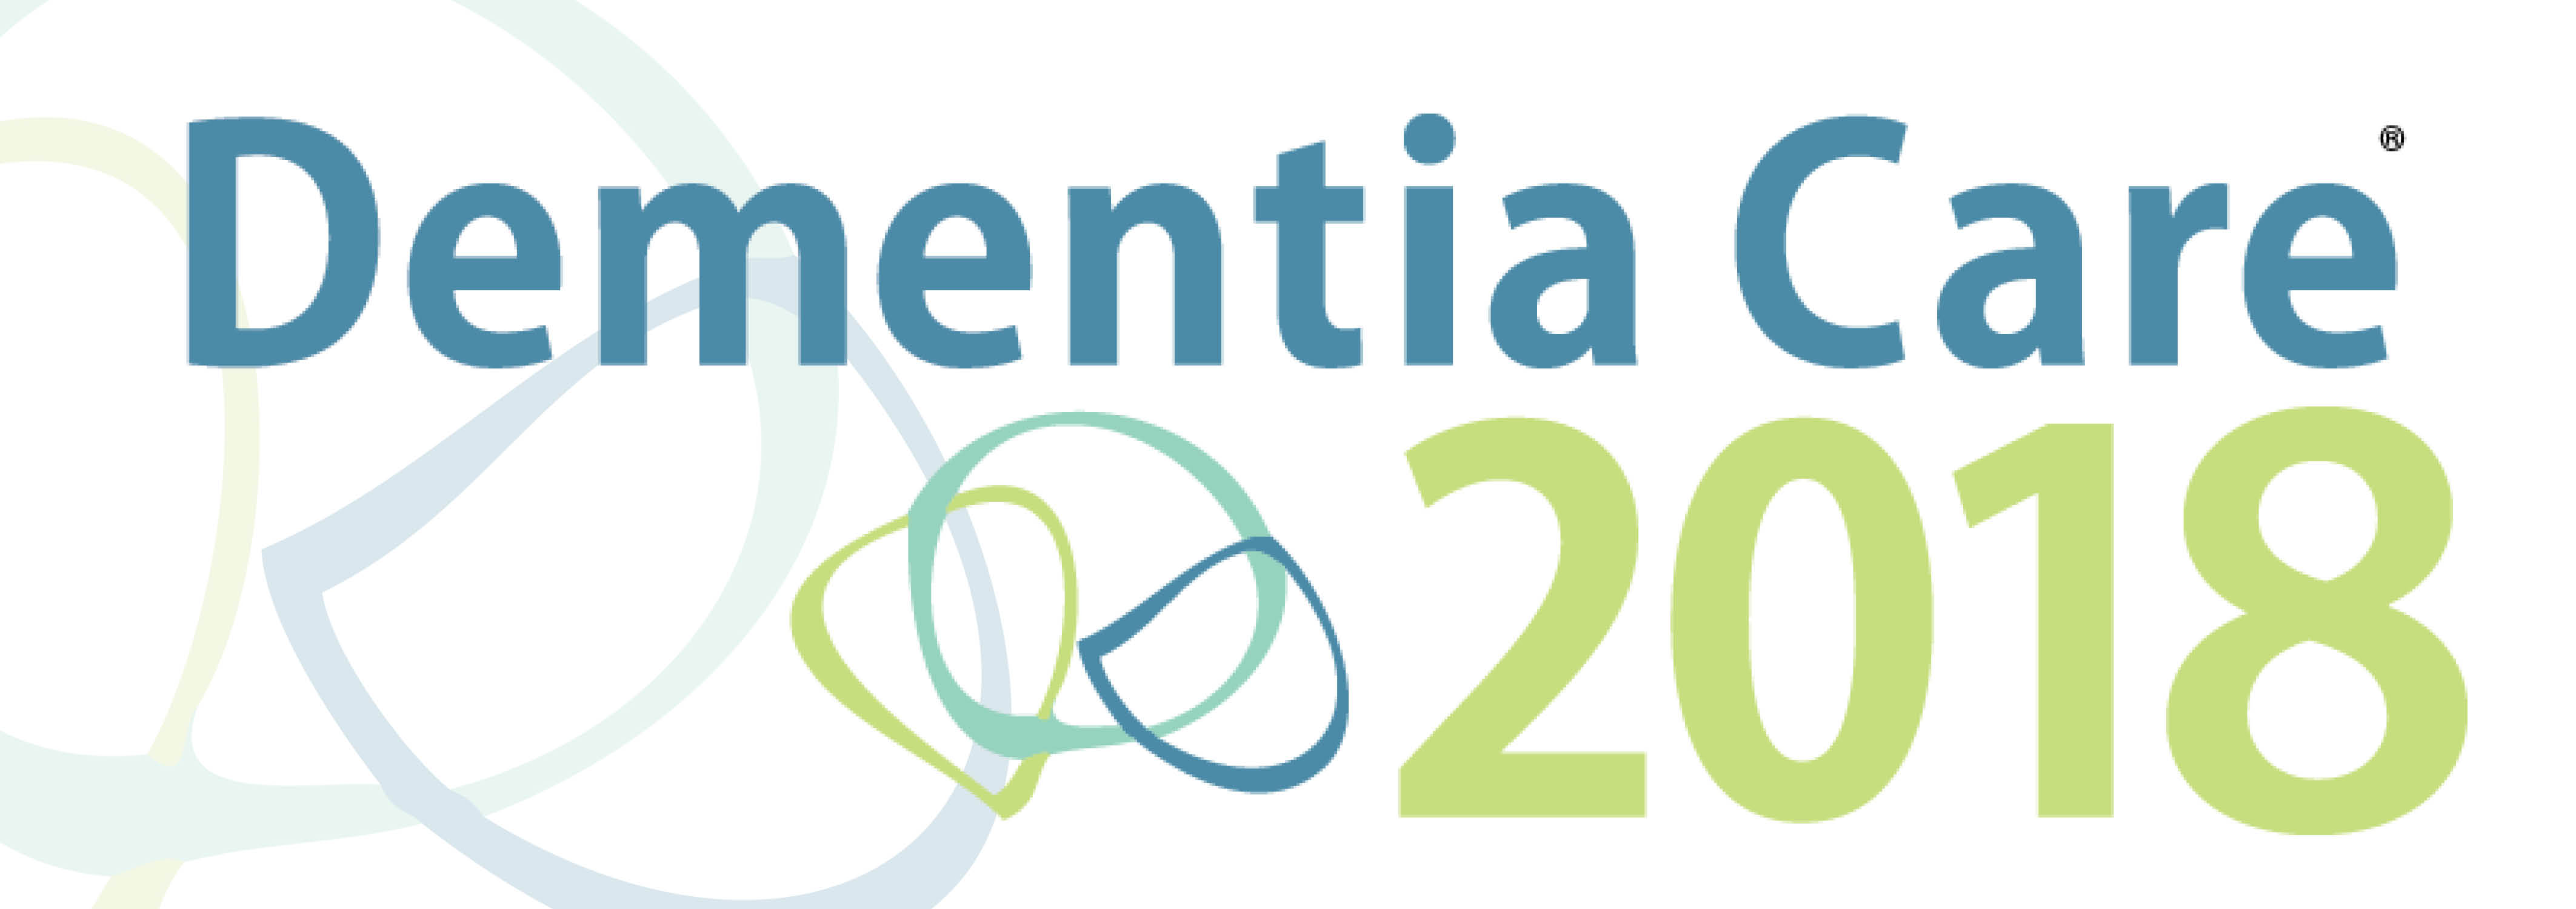 Dementia Care 2018 - quicklink